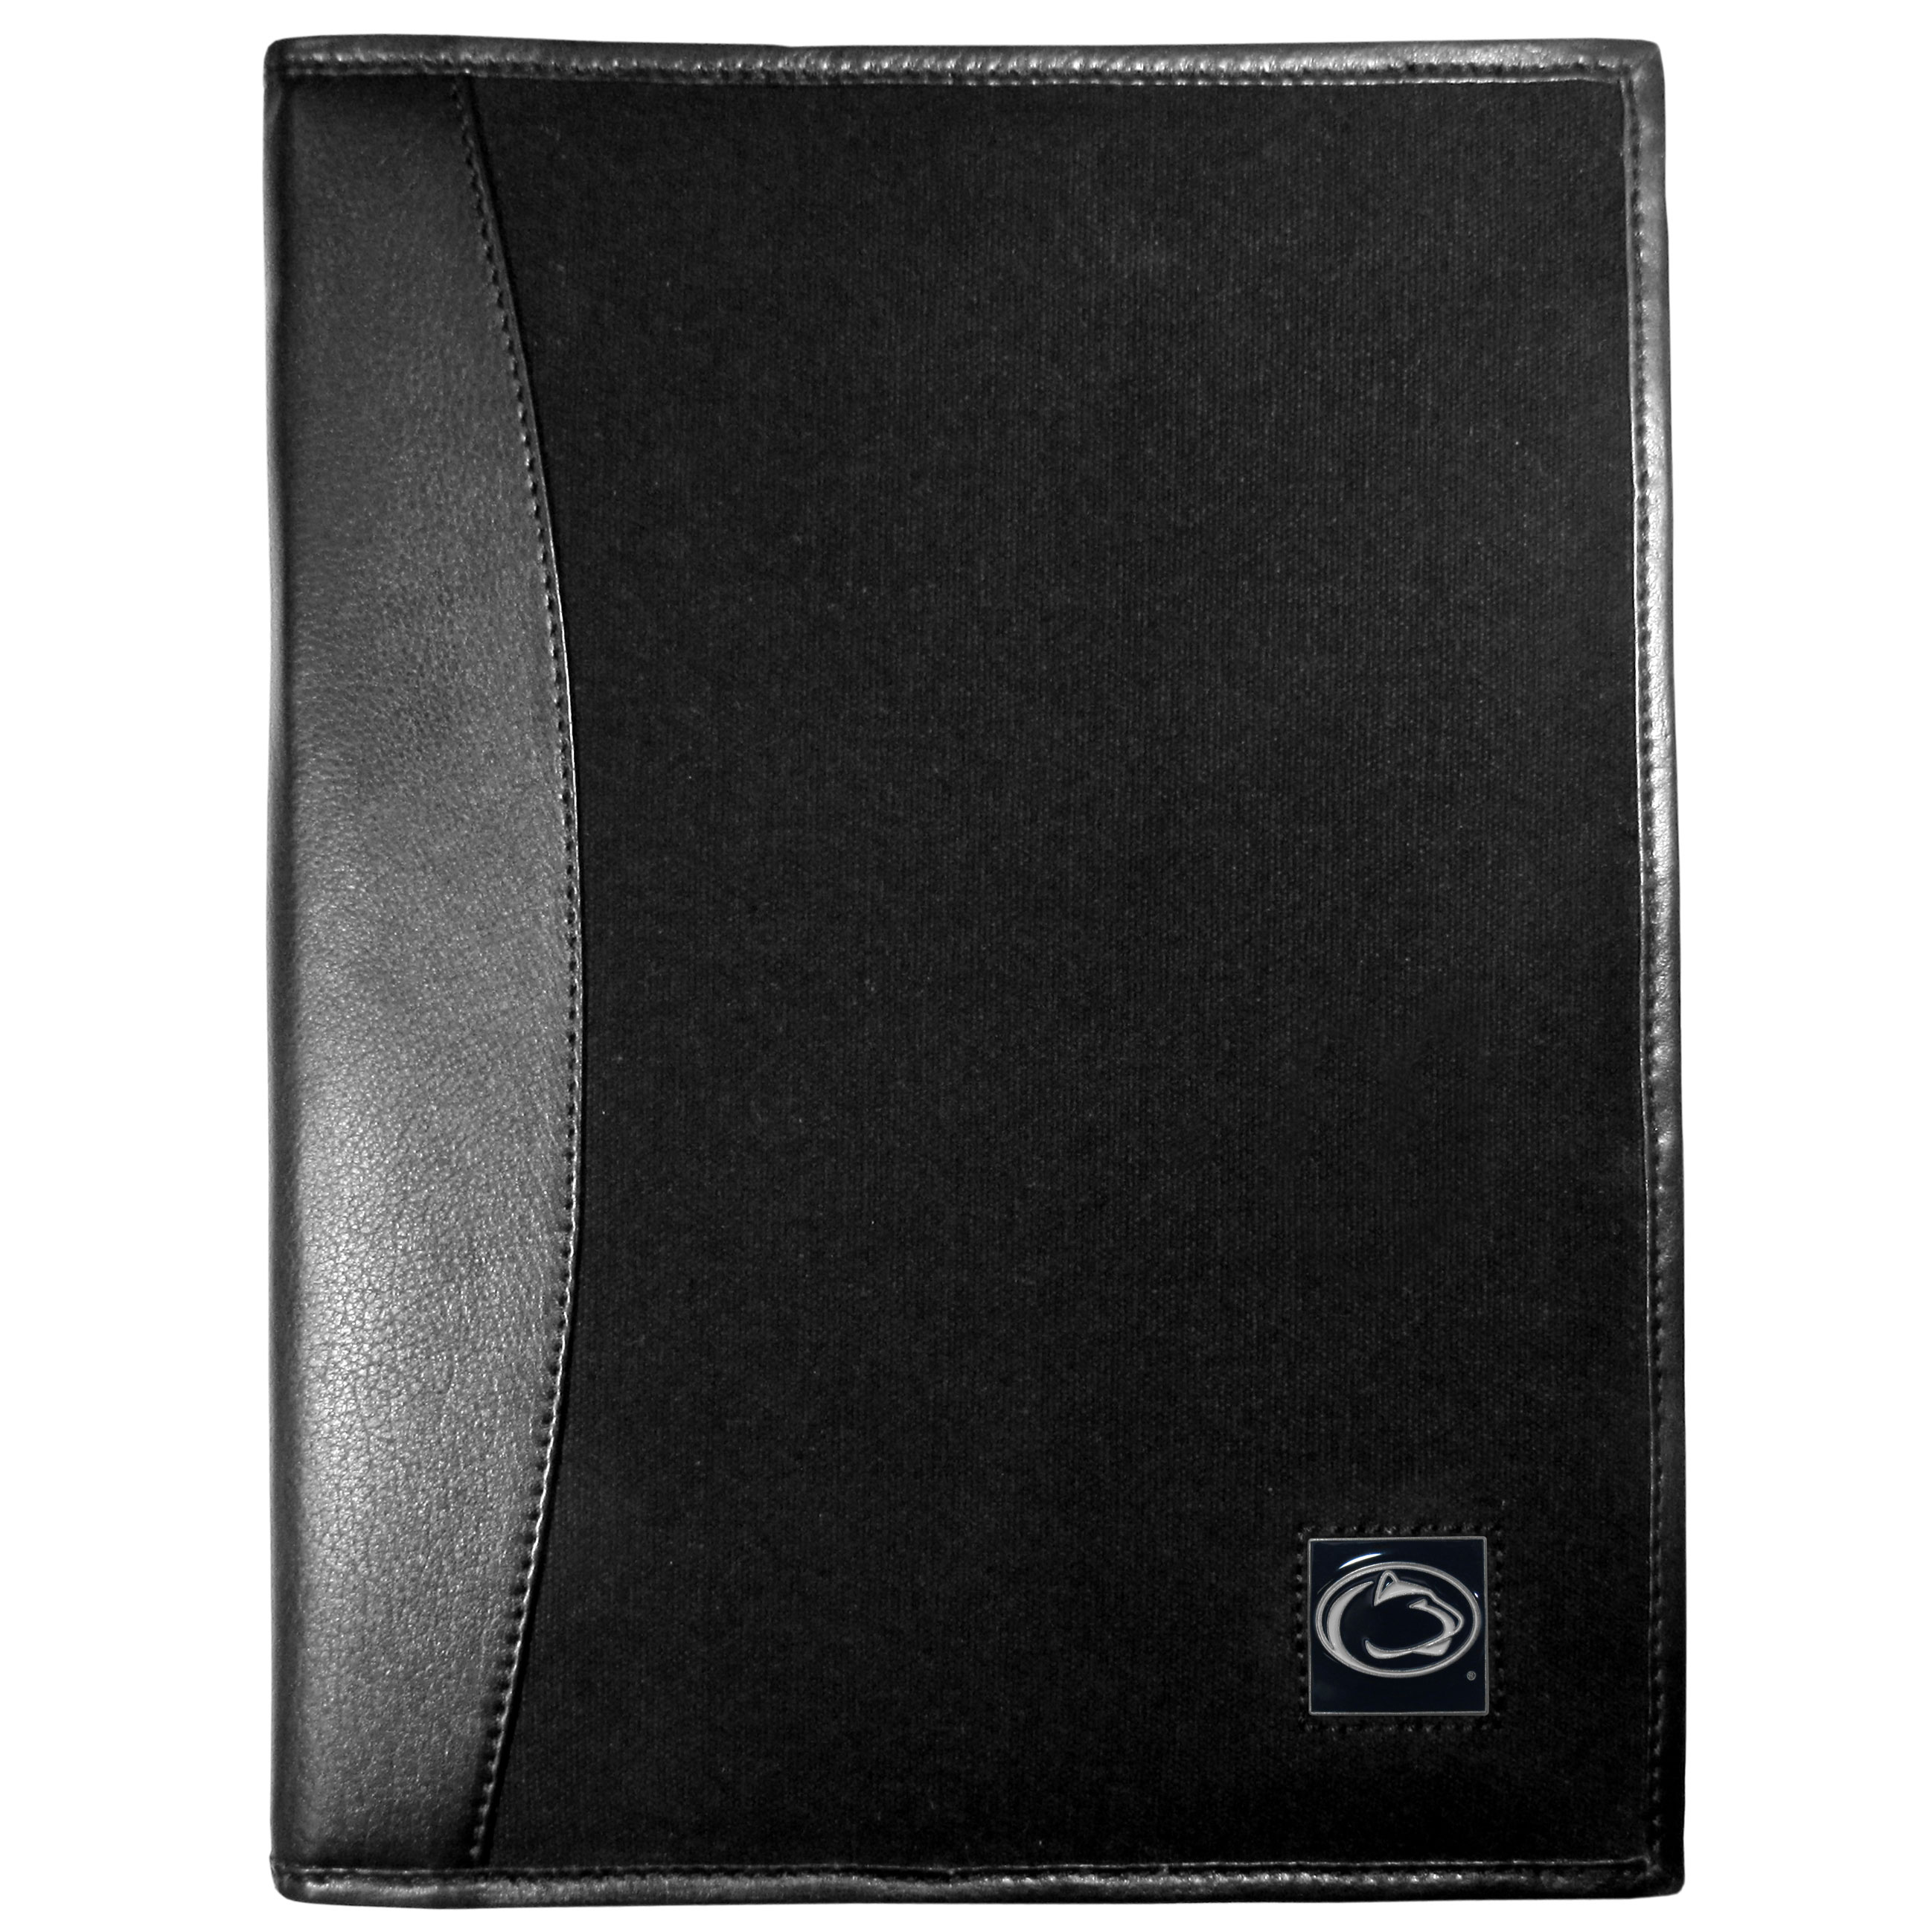 Penn St. Nittany Lions Leather and Canvas Padfolio - Our leather and canvas padfolio perfectly blends form and function. The attractive portfolio is bound in fine grain leather with an attractive canvas finish and the interior is a soft nylon. This high quality business accessory also features a fully cast metal Penn St. Nittany Lions emblem that is subtly set in the corner of the organizer. It is packed with features like 6 card slots for badges, business cards, hotel keys or credit cards and ID with a large pocket for loose papers and a writing tablet slot making it a must-have for the professional on the go.